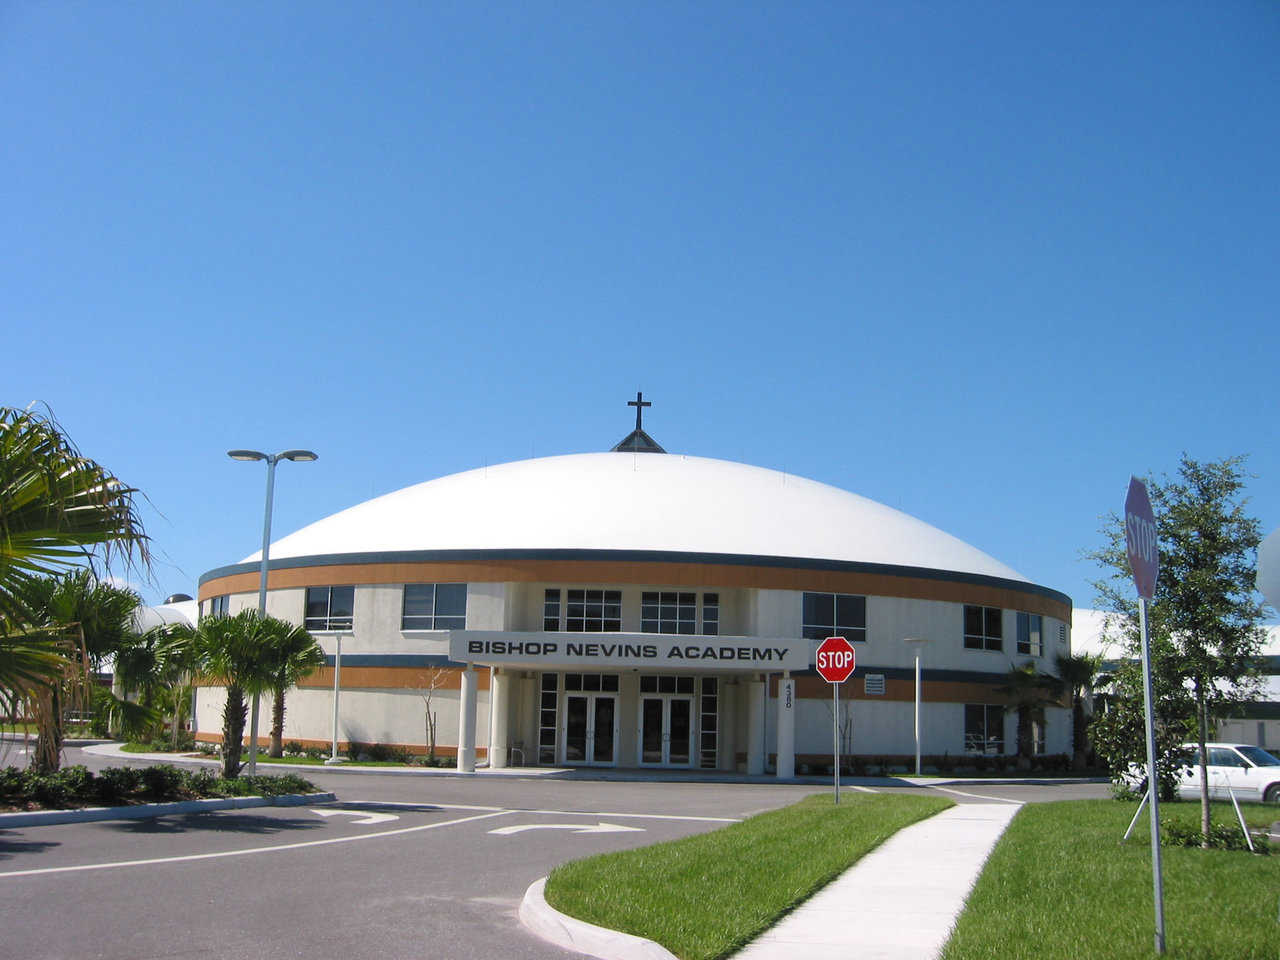 Bishop Nevins Academy — Approximately 500 students attend this beautiful Monolithic Dome facility.